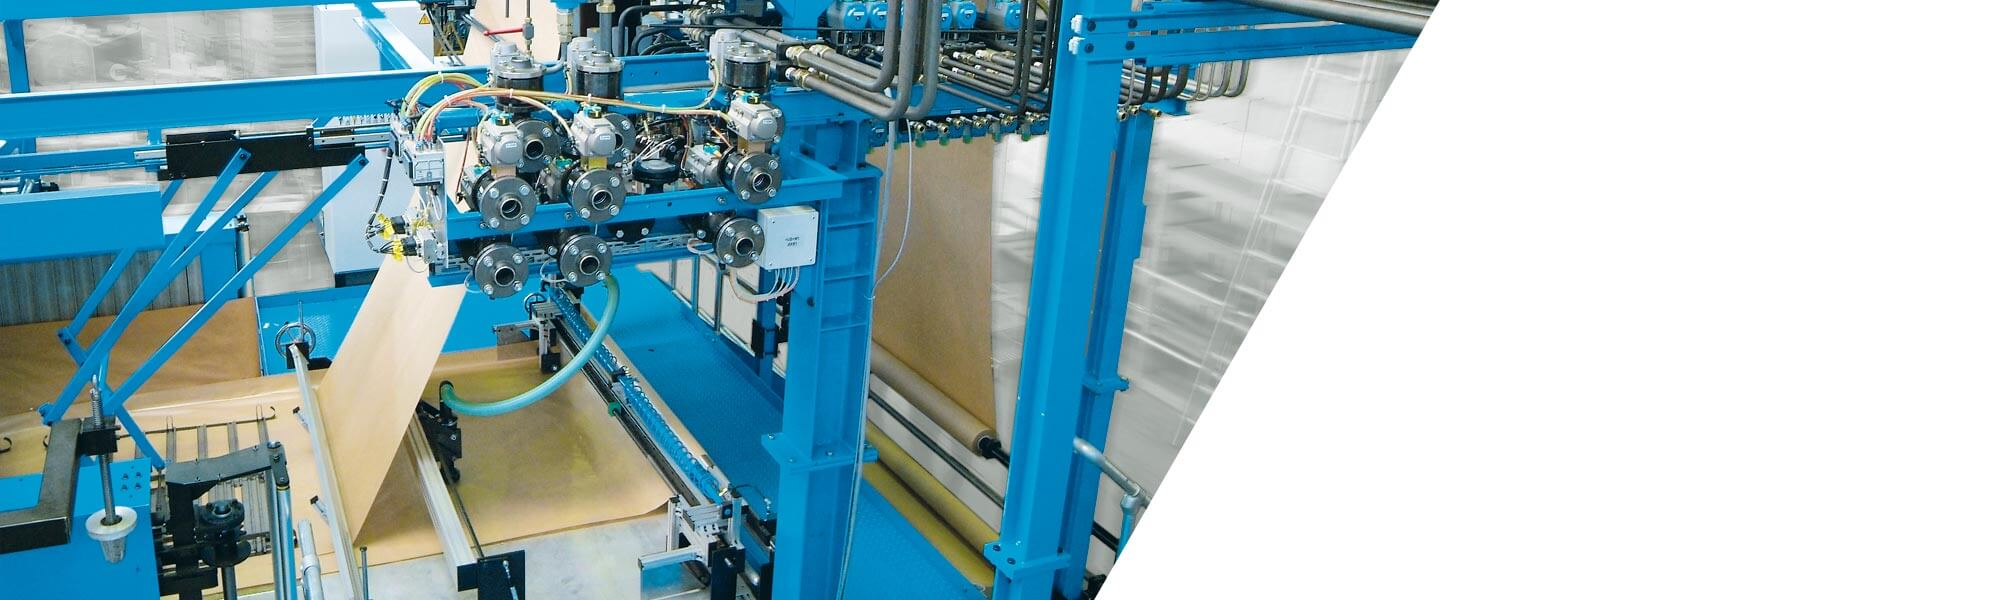 Production lines for the continuous manufacture of high-quality slabstock foams